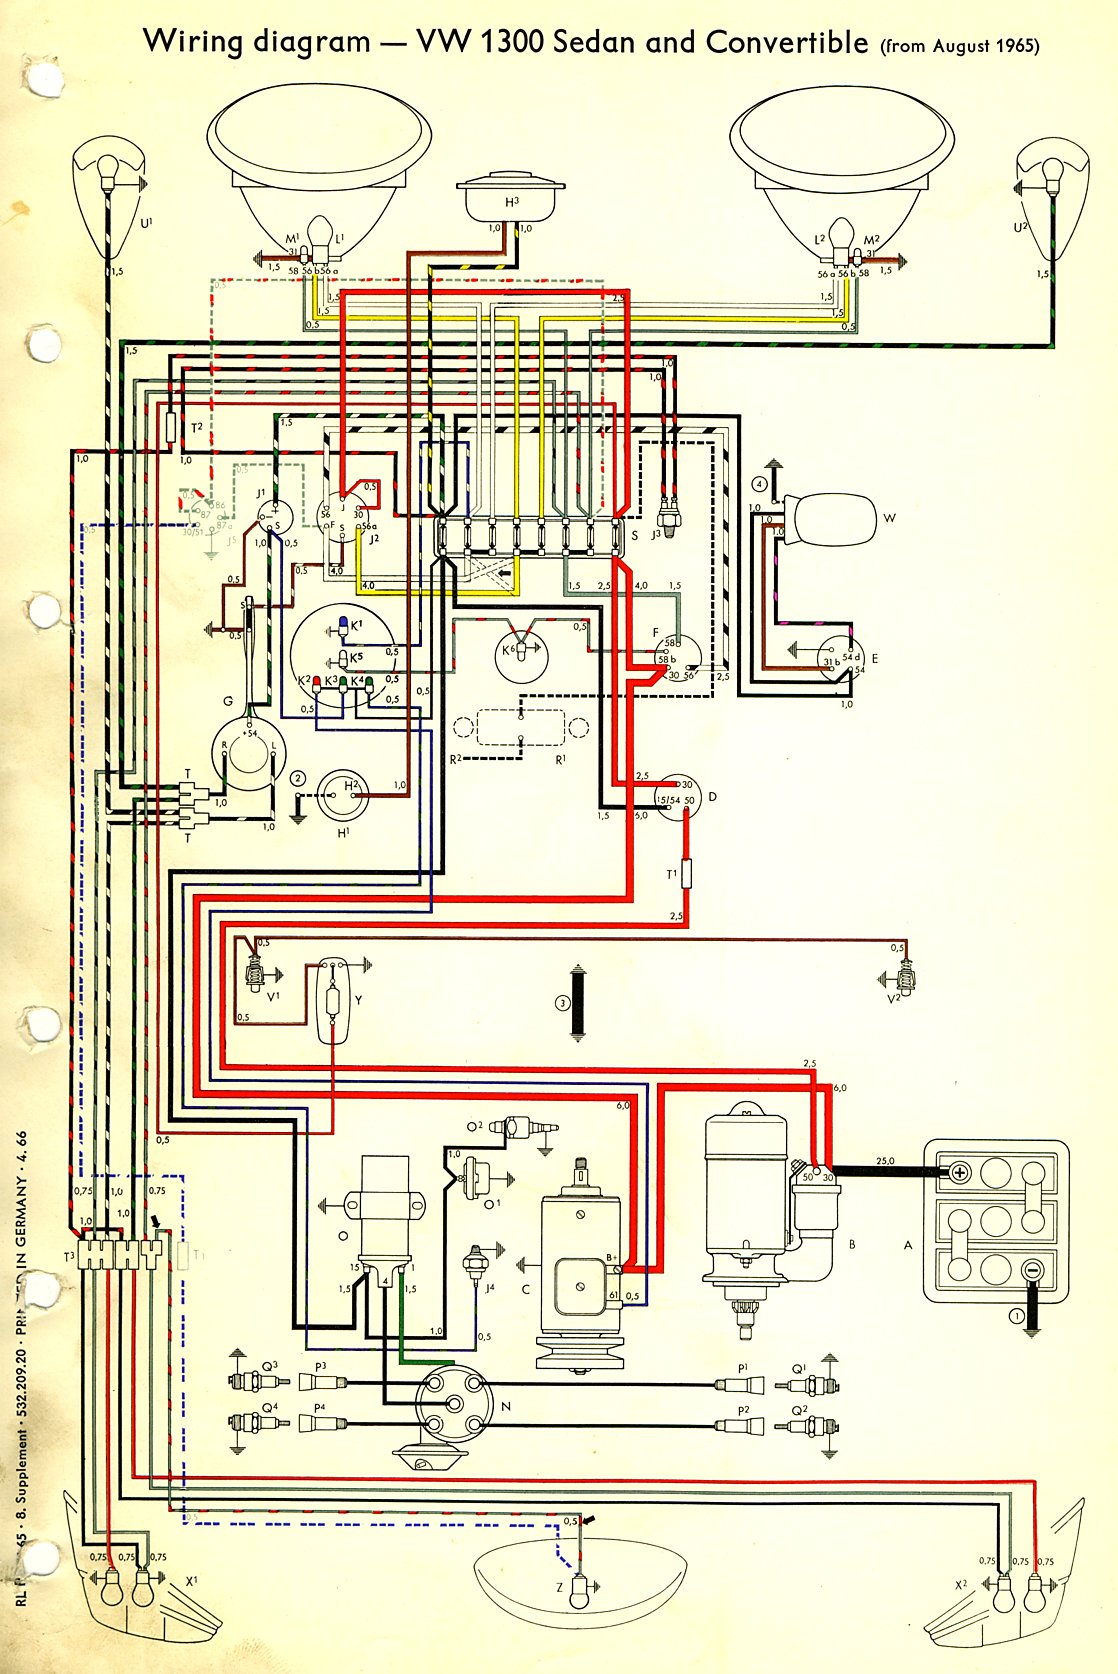 66 Vw Wiring Diagram Radio Data Wiring Schema Ford Truck Wiring Schematics  74 Corvette Wiring Schematic